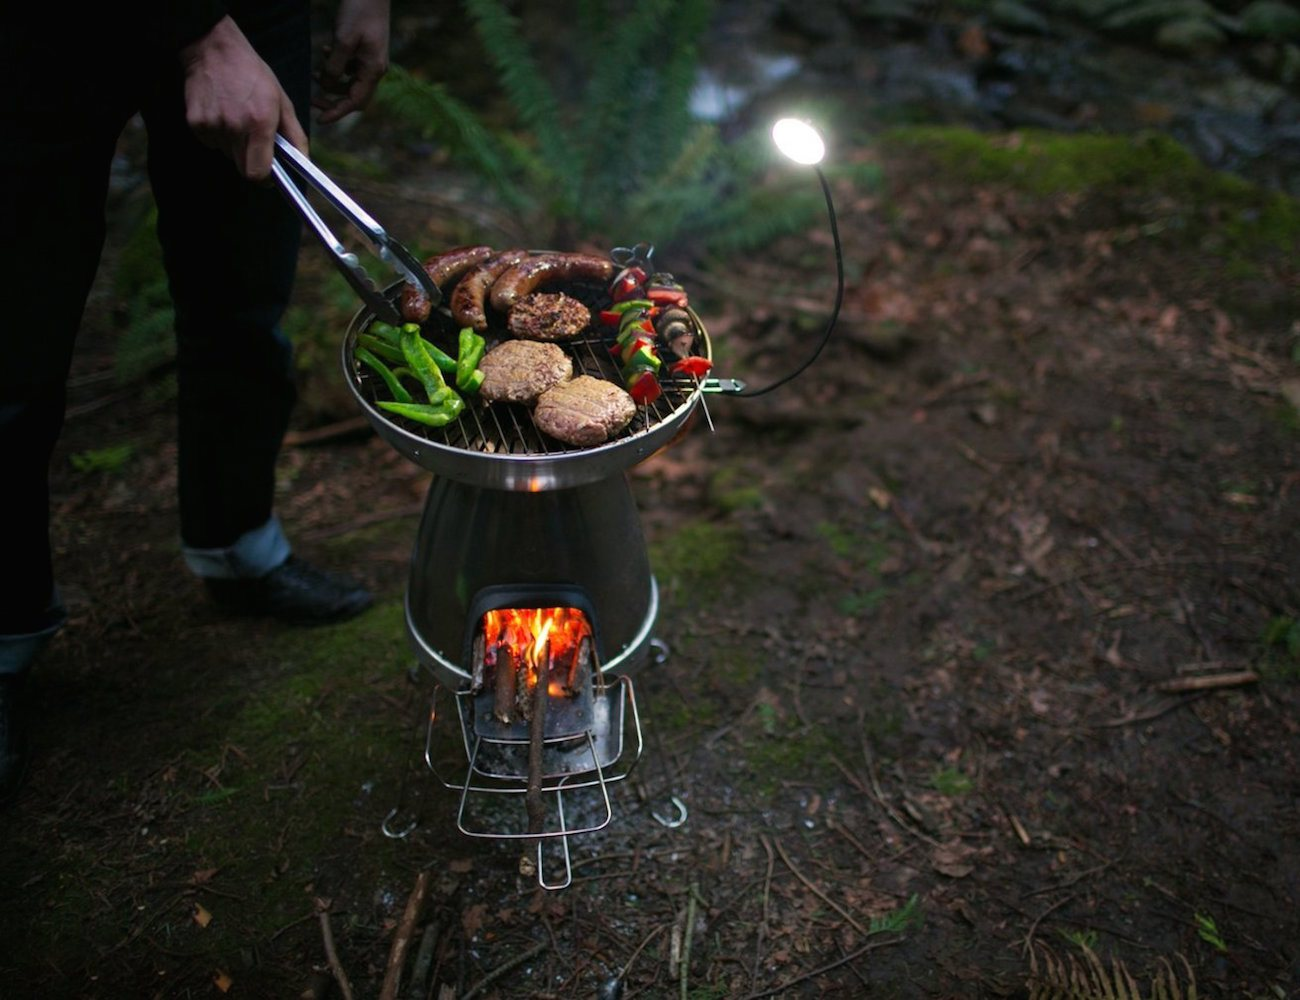 BaseCamp – Wood Burning Stove and Grill by BioLite